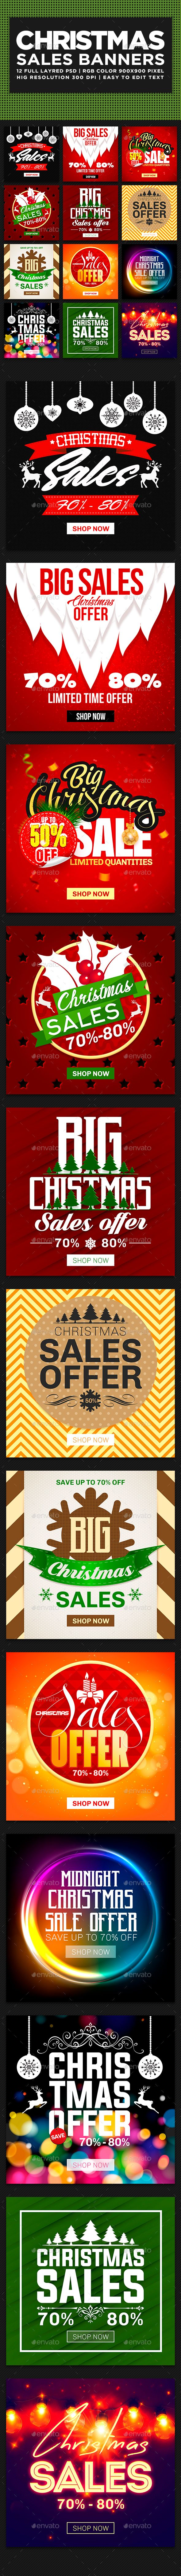 Christmas Sales Banners — Photoshop PSD #season #cyber monday • Download ➝ https://graphicriver.net/item/christmas-sales-banners/18934022?ref=pxcr